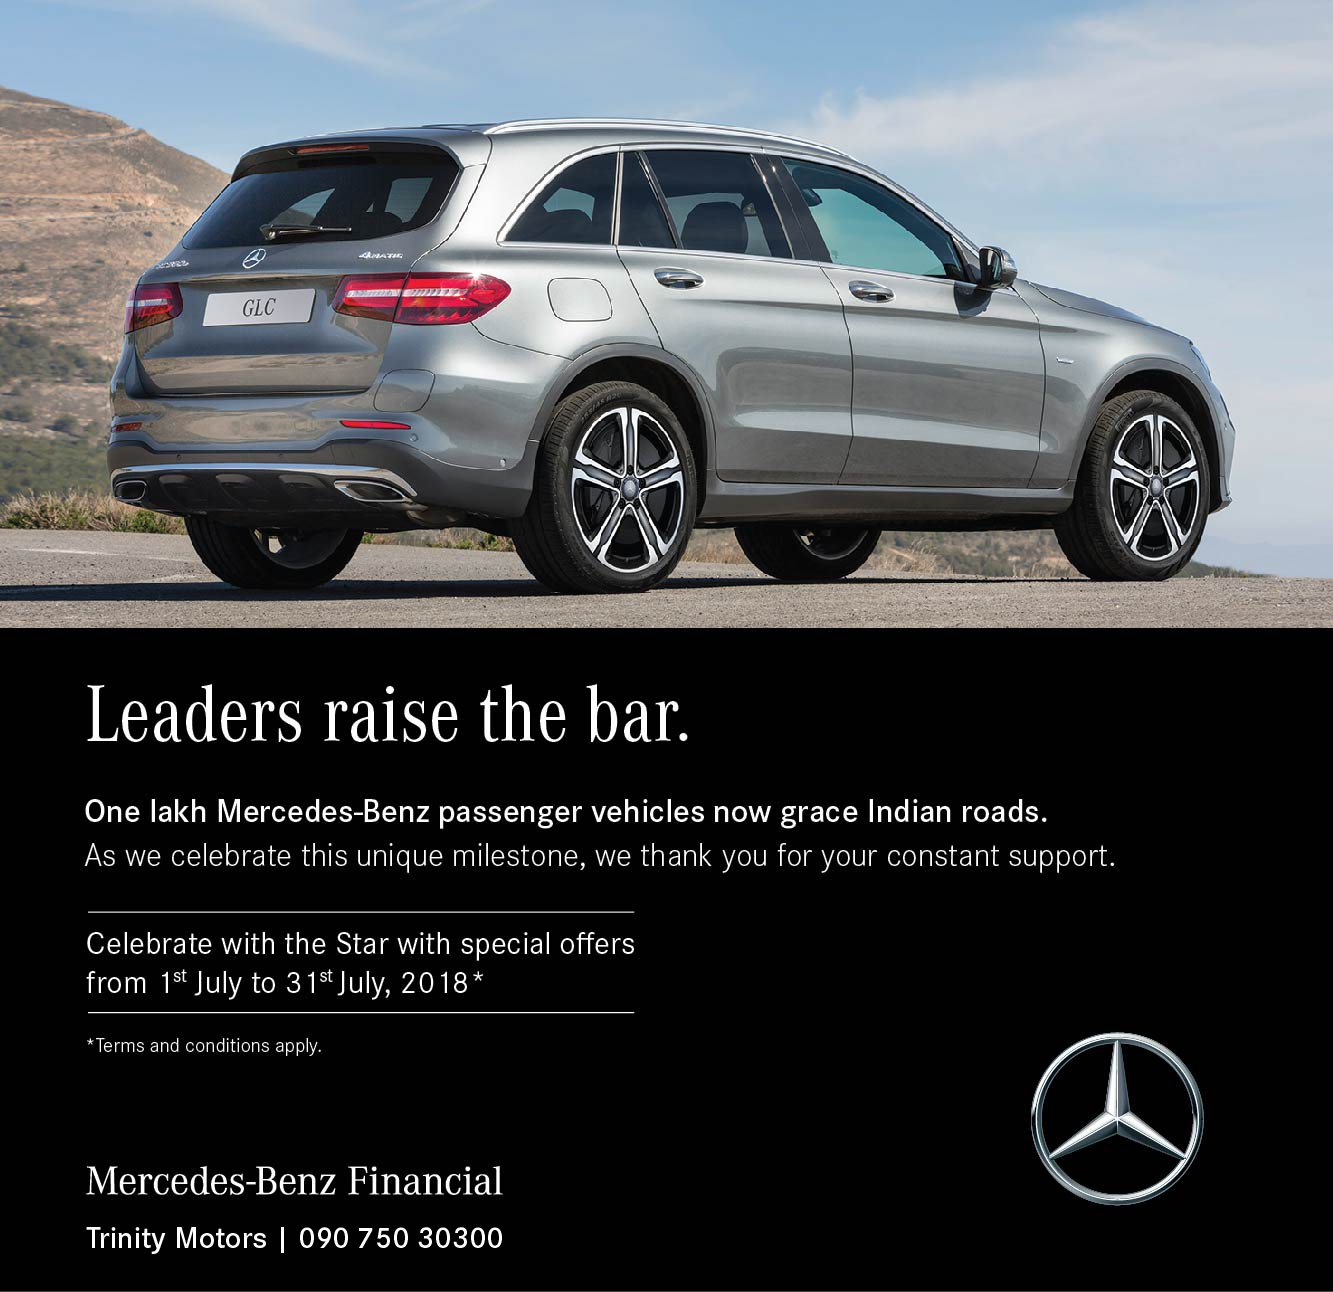 Set Your Pulse Racing To New Offers From Mercedes Benz Visit Us At Trinity Motors To Find Out More Www Trinitymotors In Trinitym Mercedes Benz Mercedes Benz